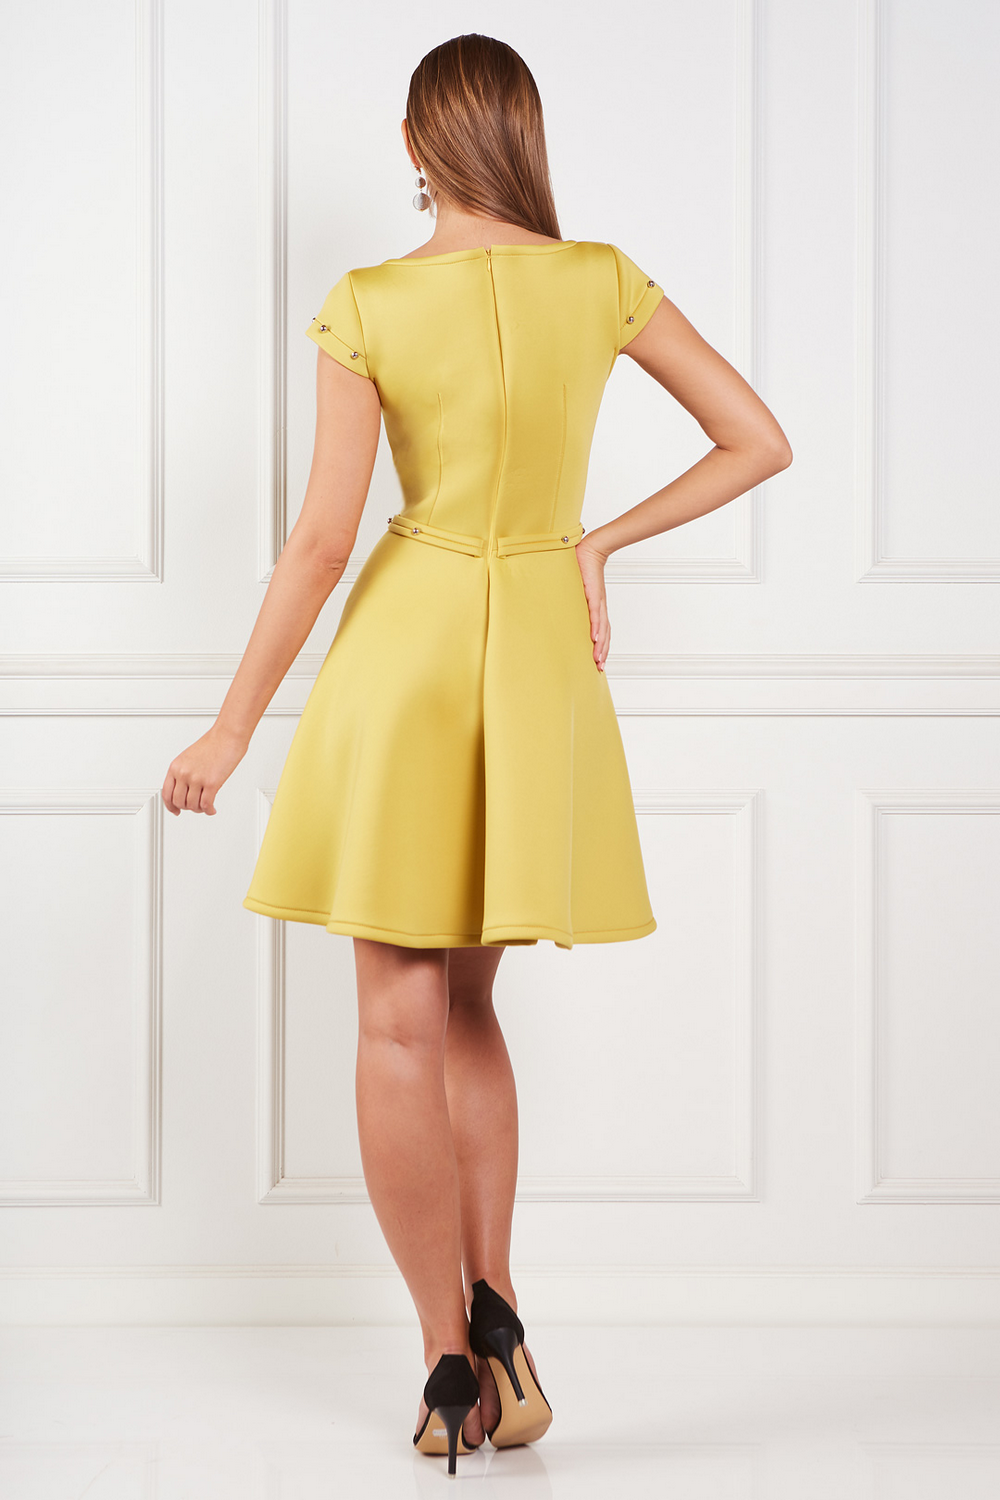 yellow-samantha-dress (2)